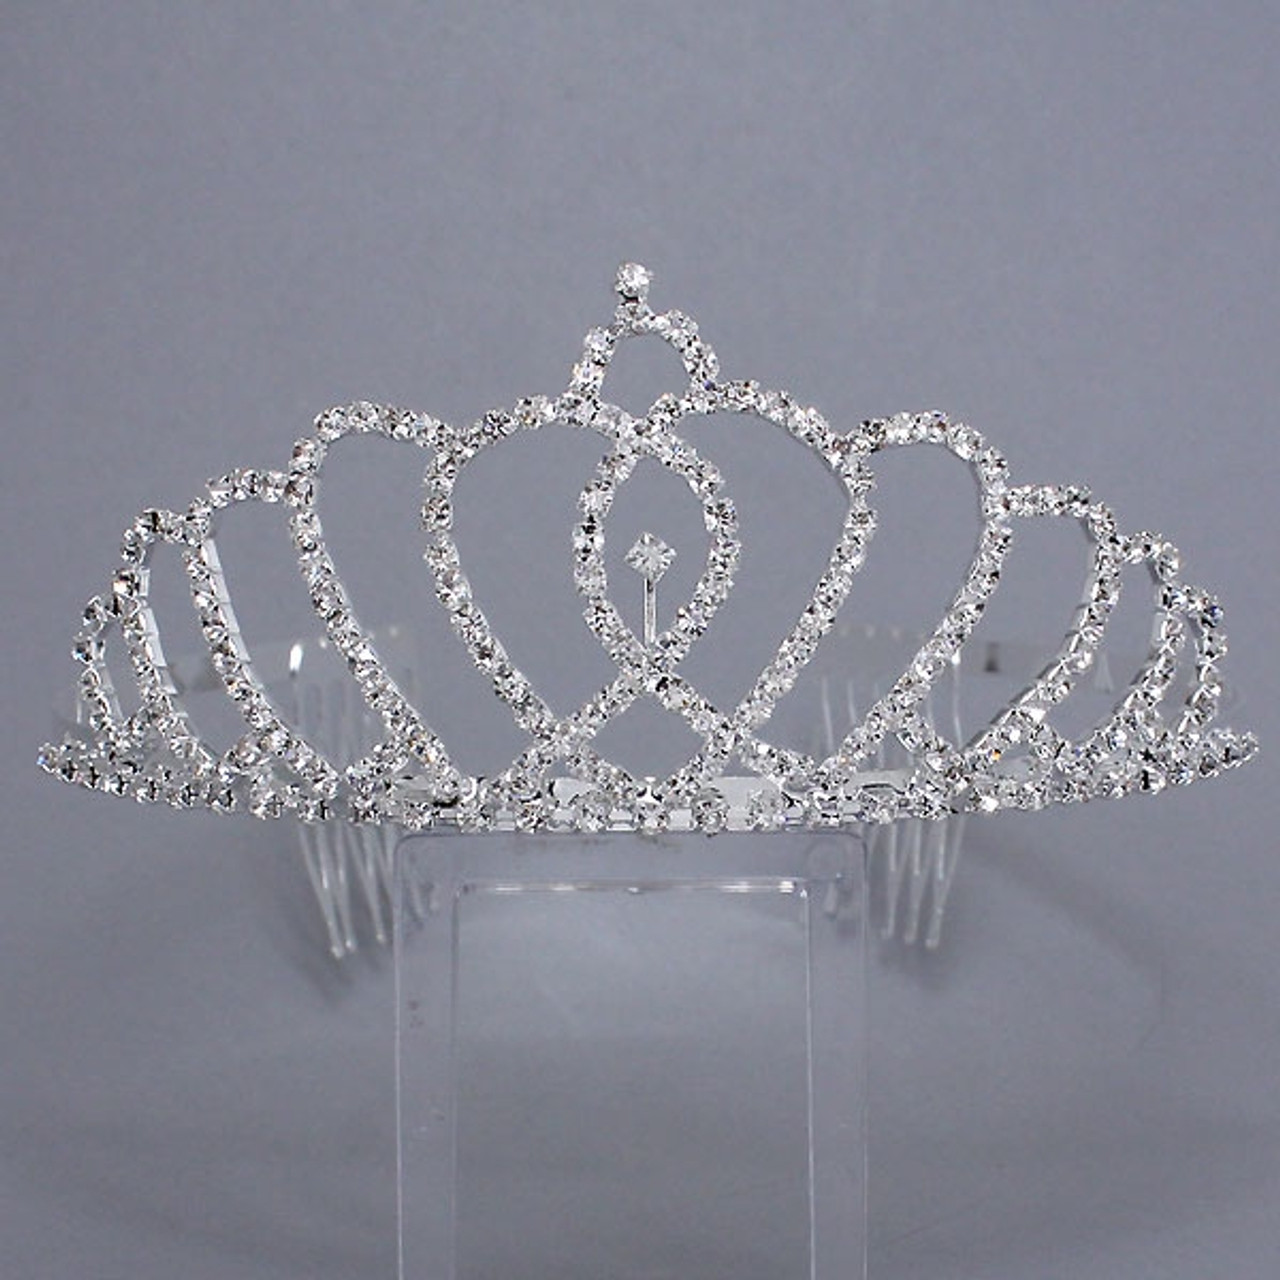 Hair Accessories and Tiaras